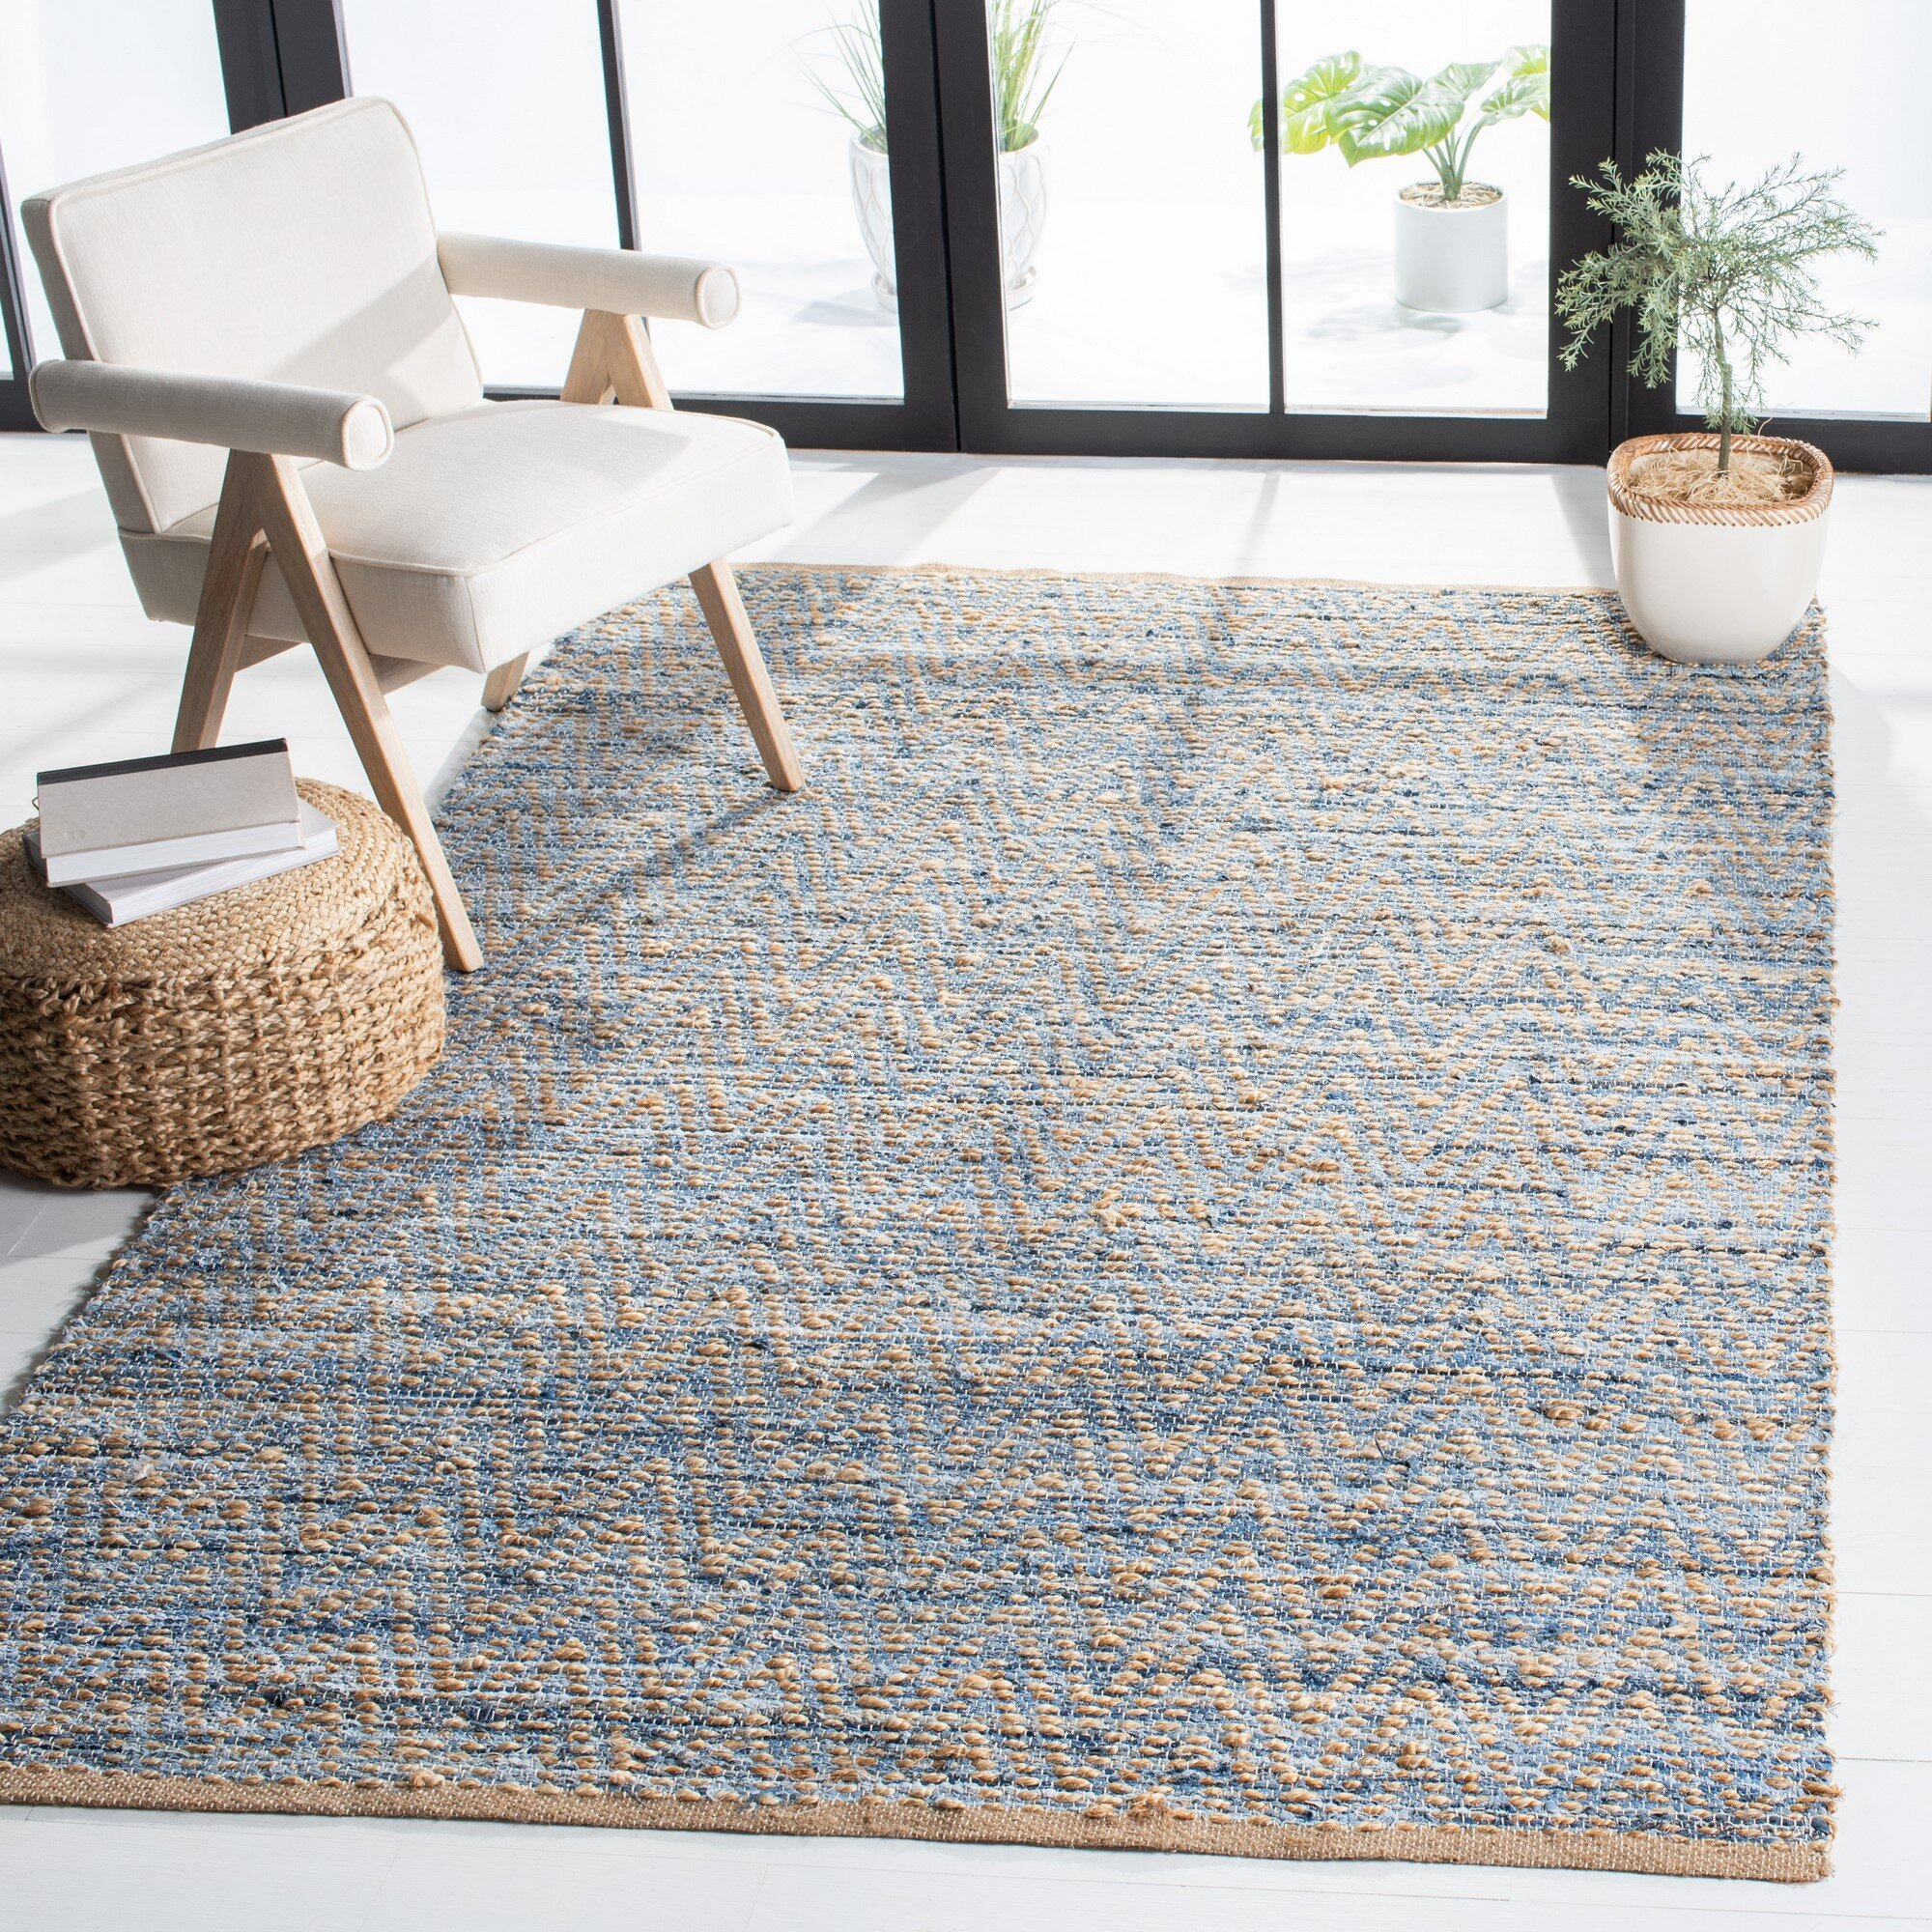 12 X 15 Striped Area Rugs You Ll Love In 2021 Wayfair